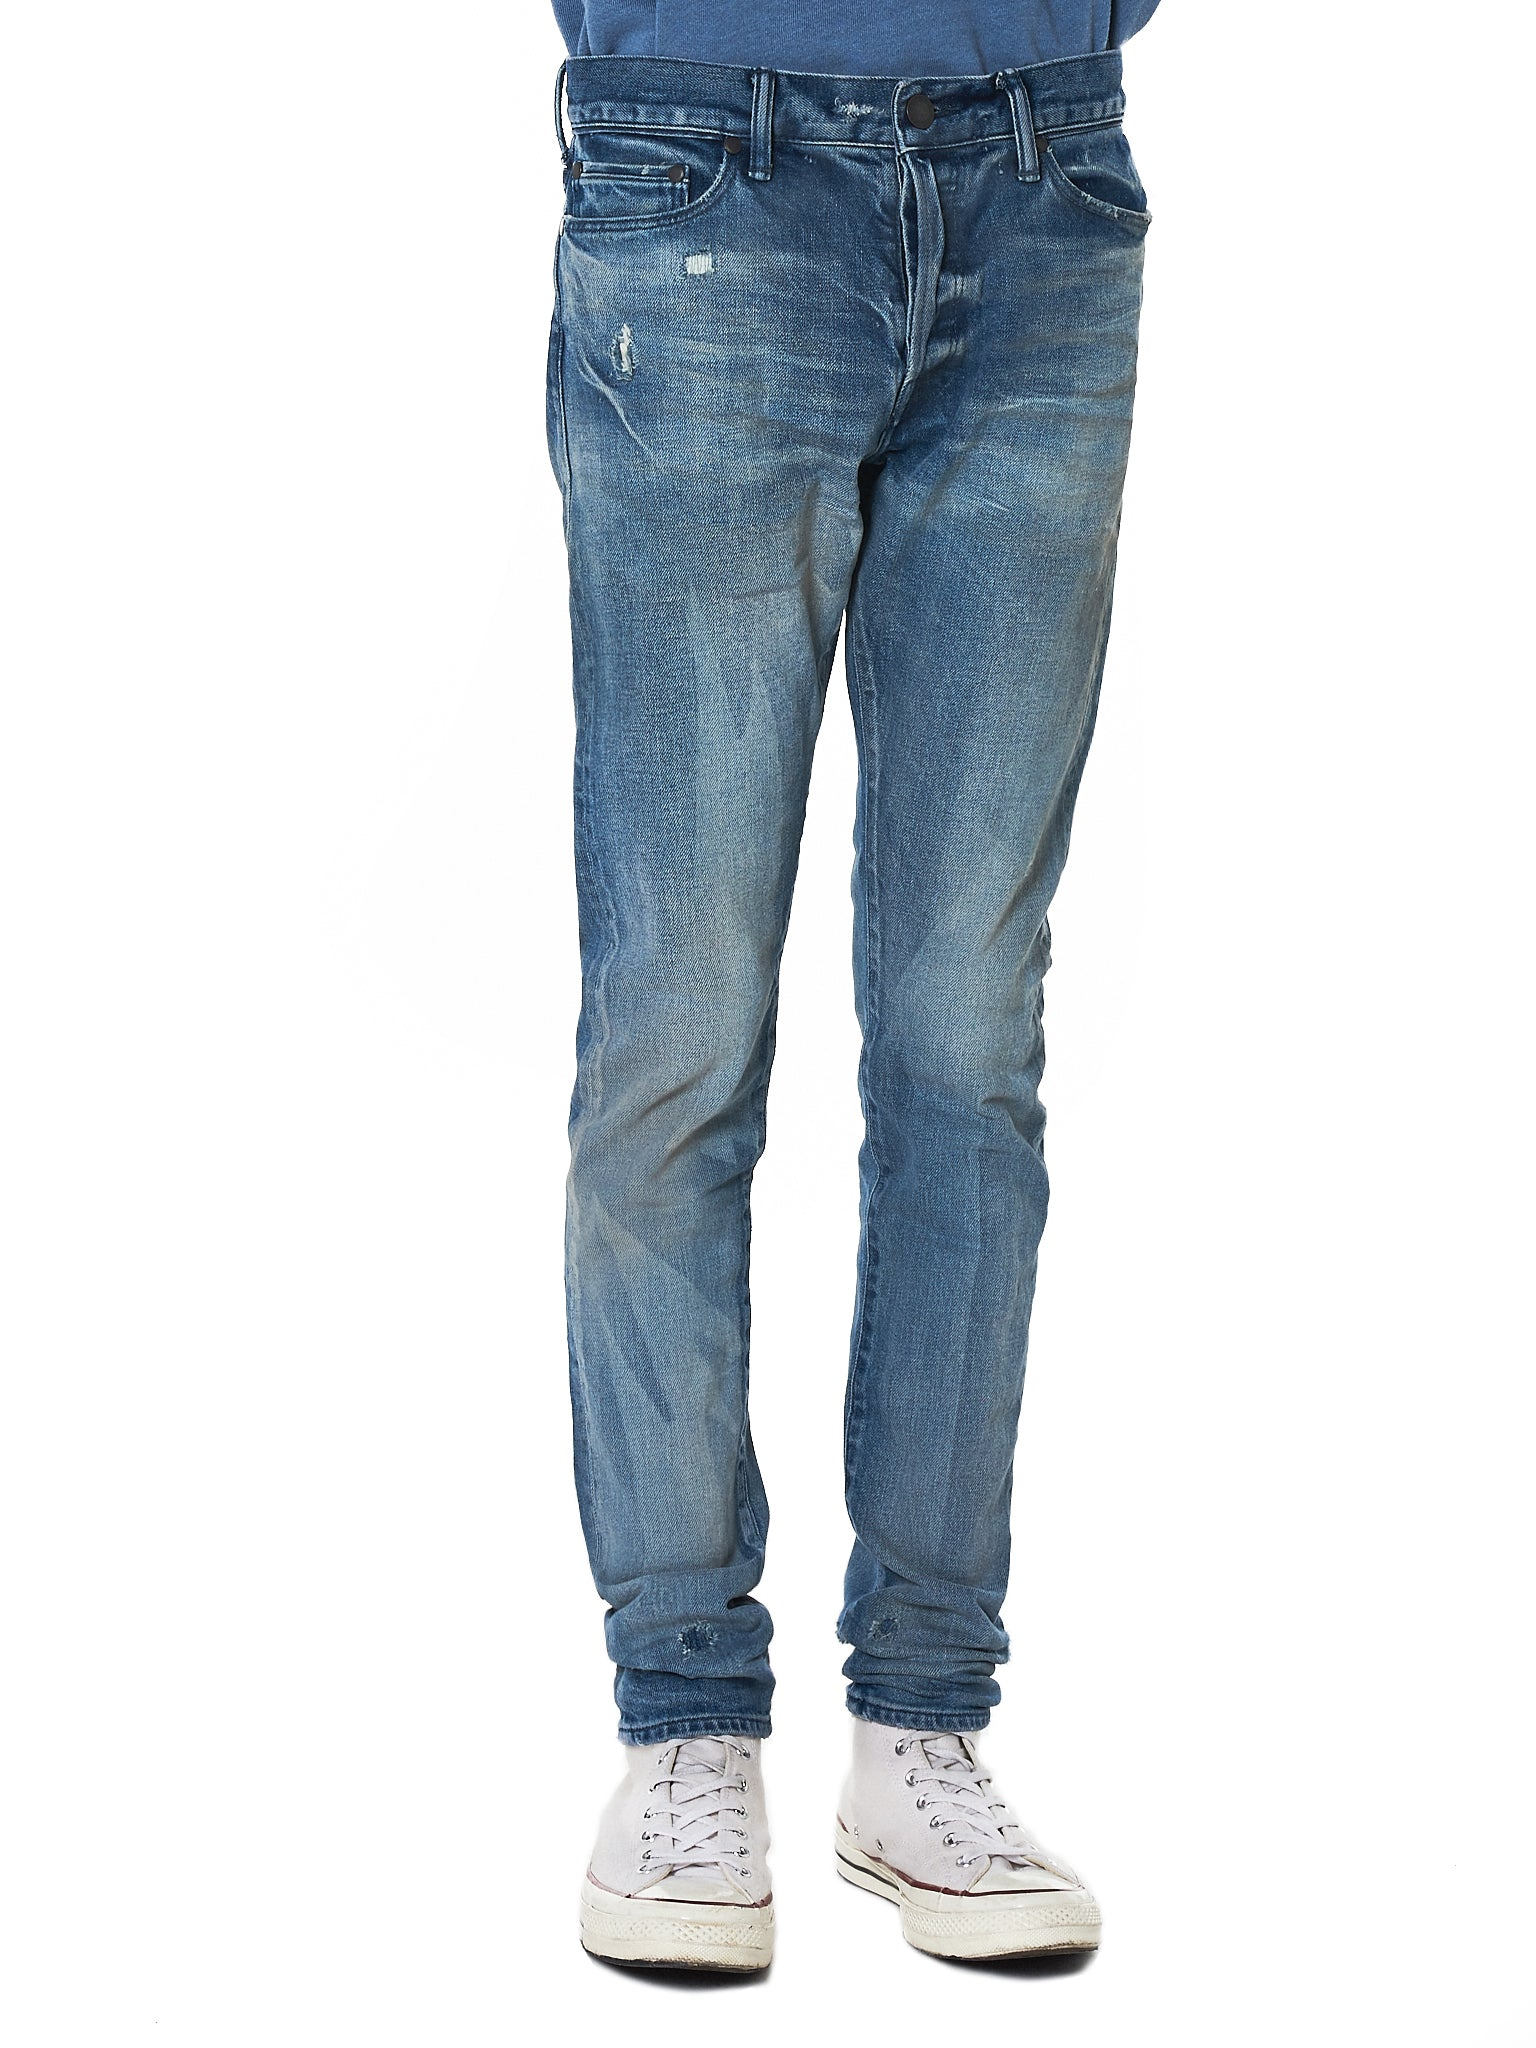 'The Cast 2' Denim Pant (G150E58168L-INDIGO)